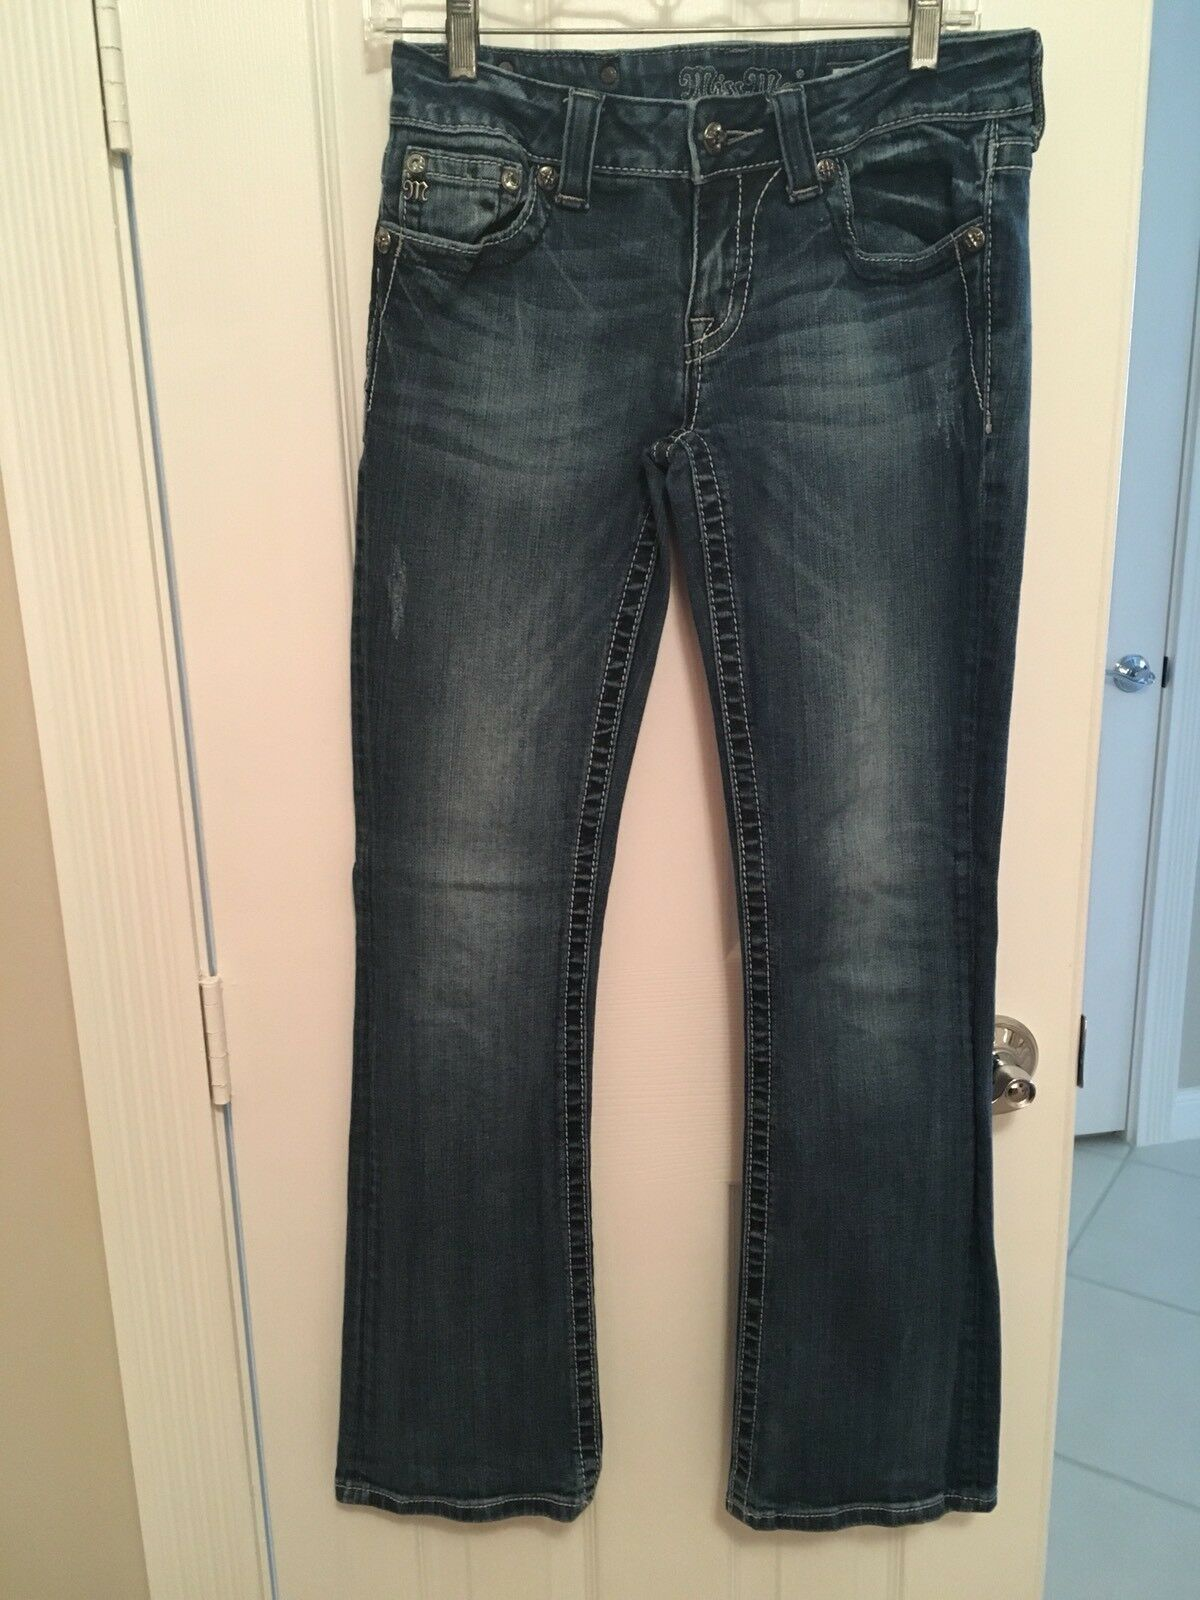 PRE-OWN MISS ME JEANS BOOTCUT  SIZE-28 COLOR-DISTRESSED